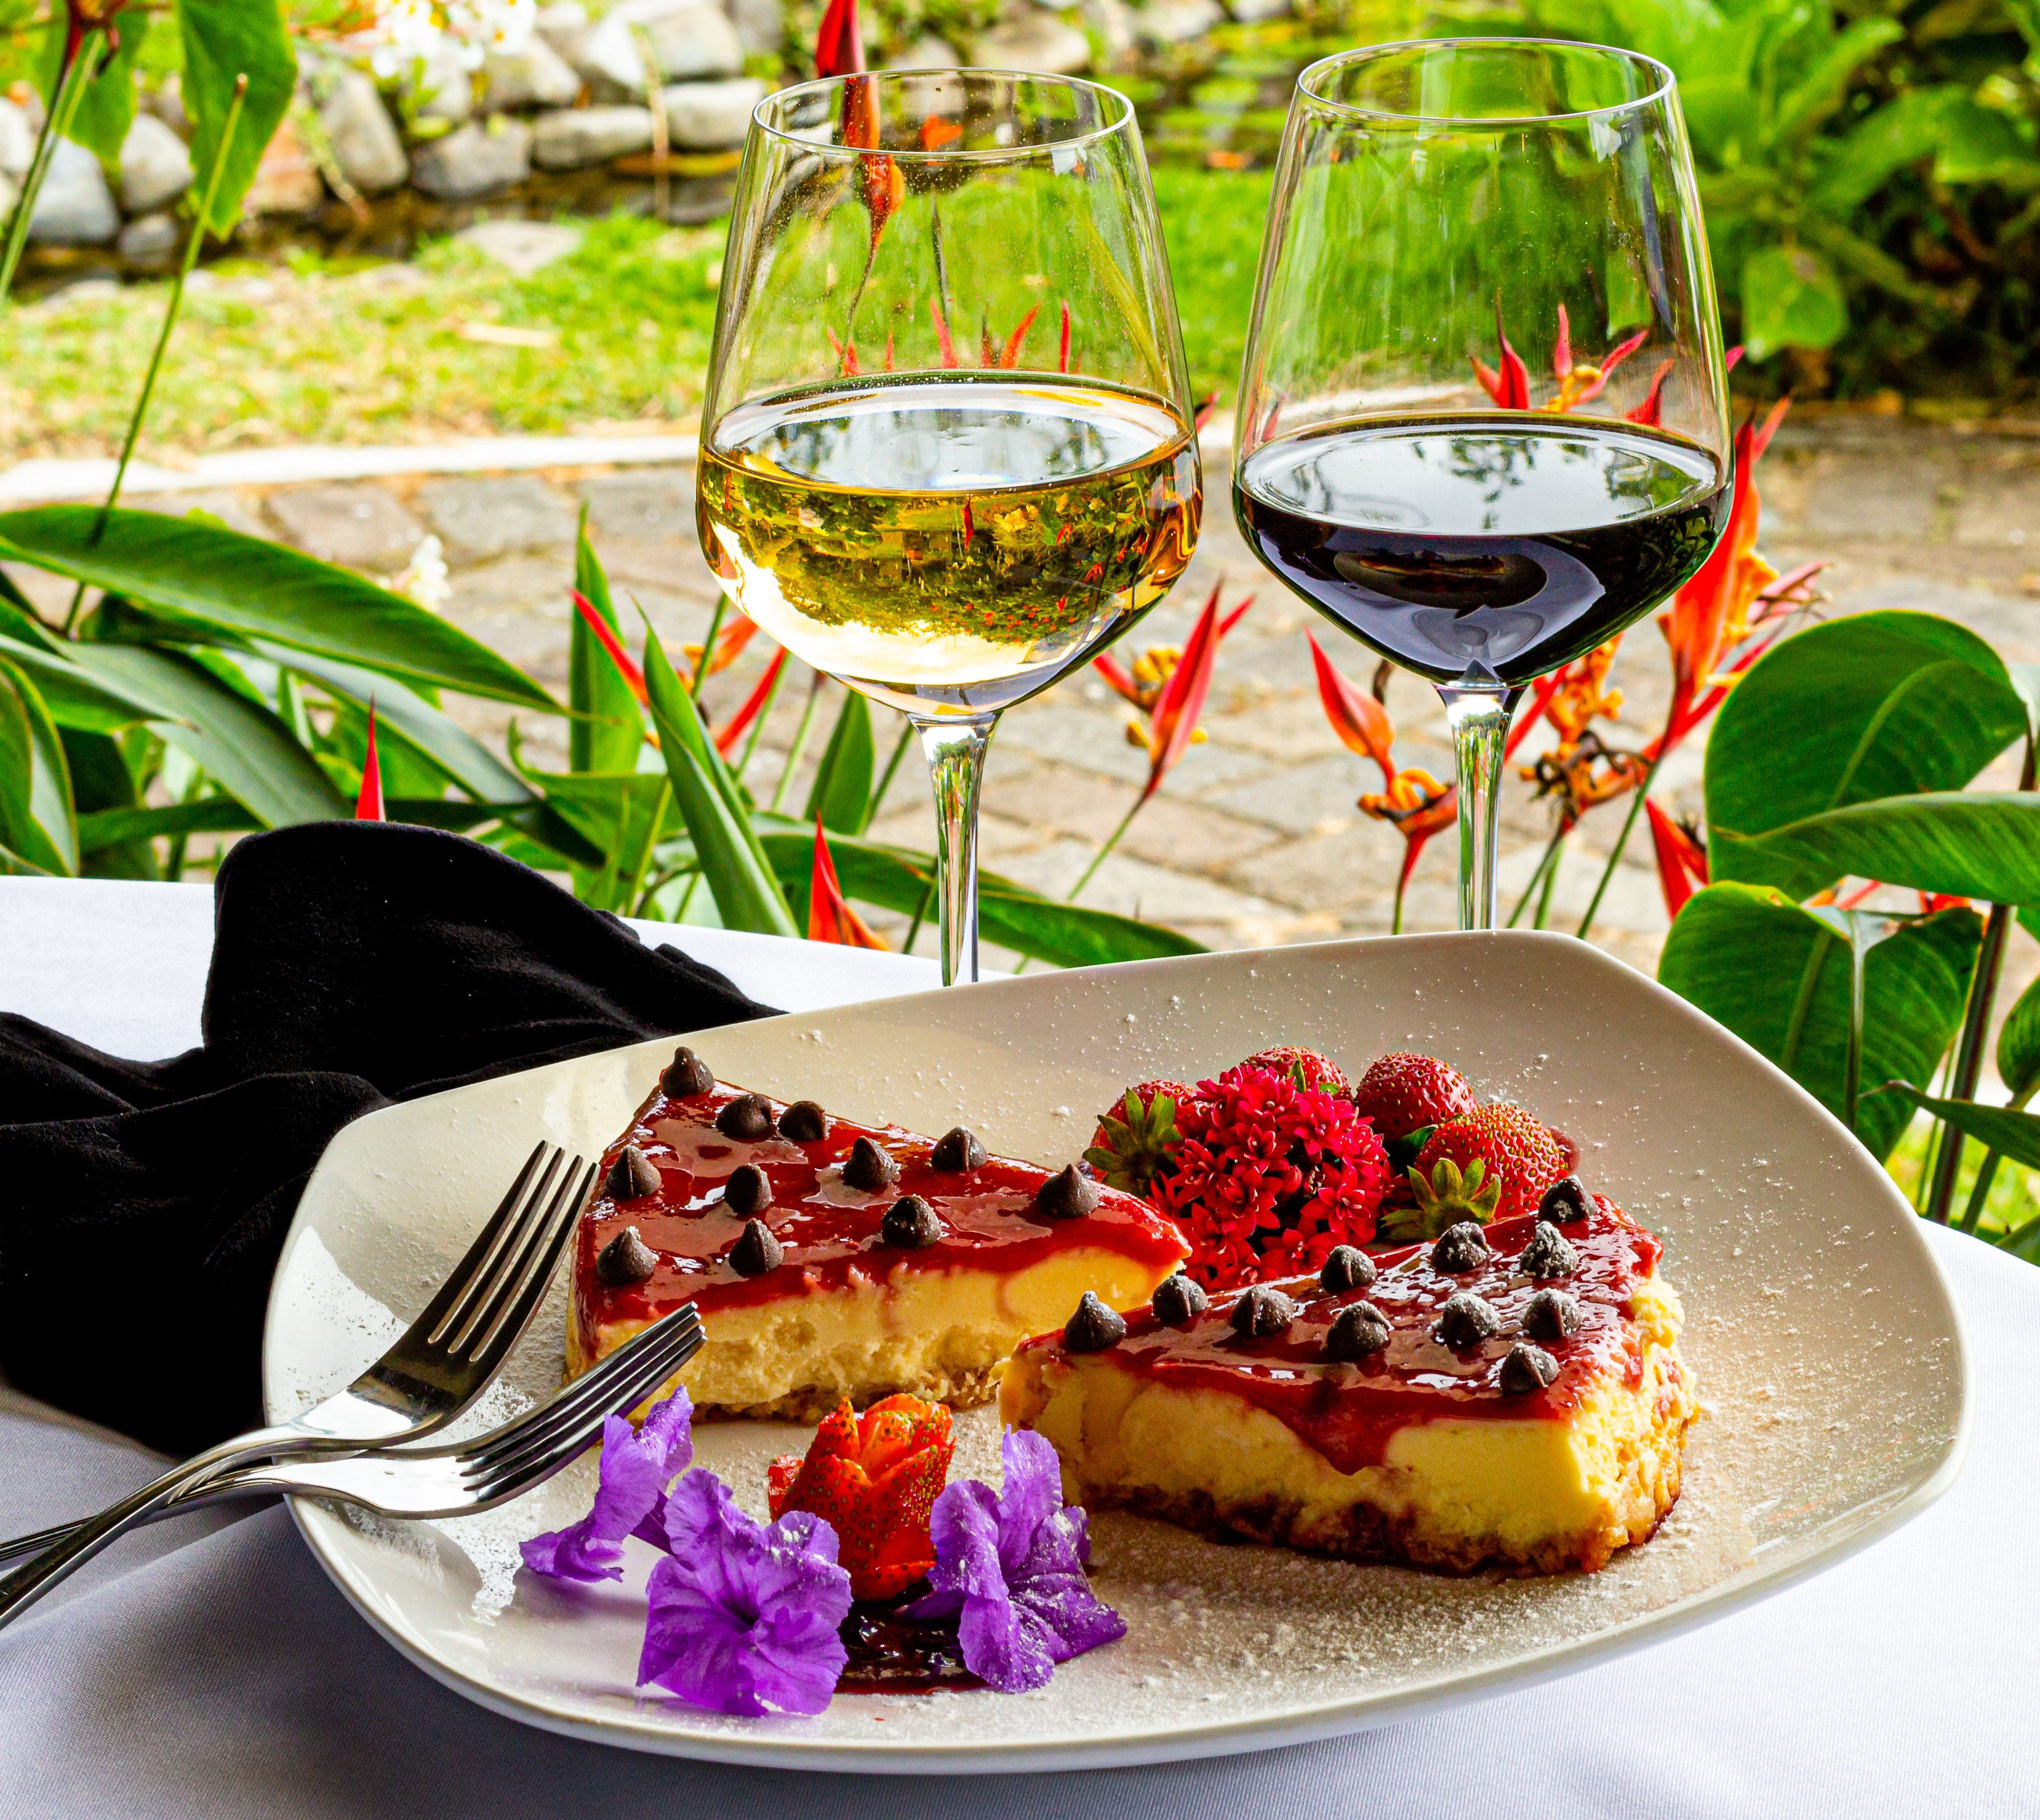 Two slices of cheesecake sit on a plate next to glasses of yellow and red wines.